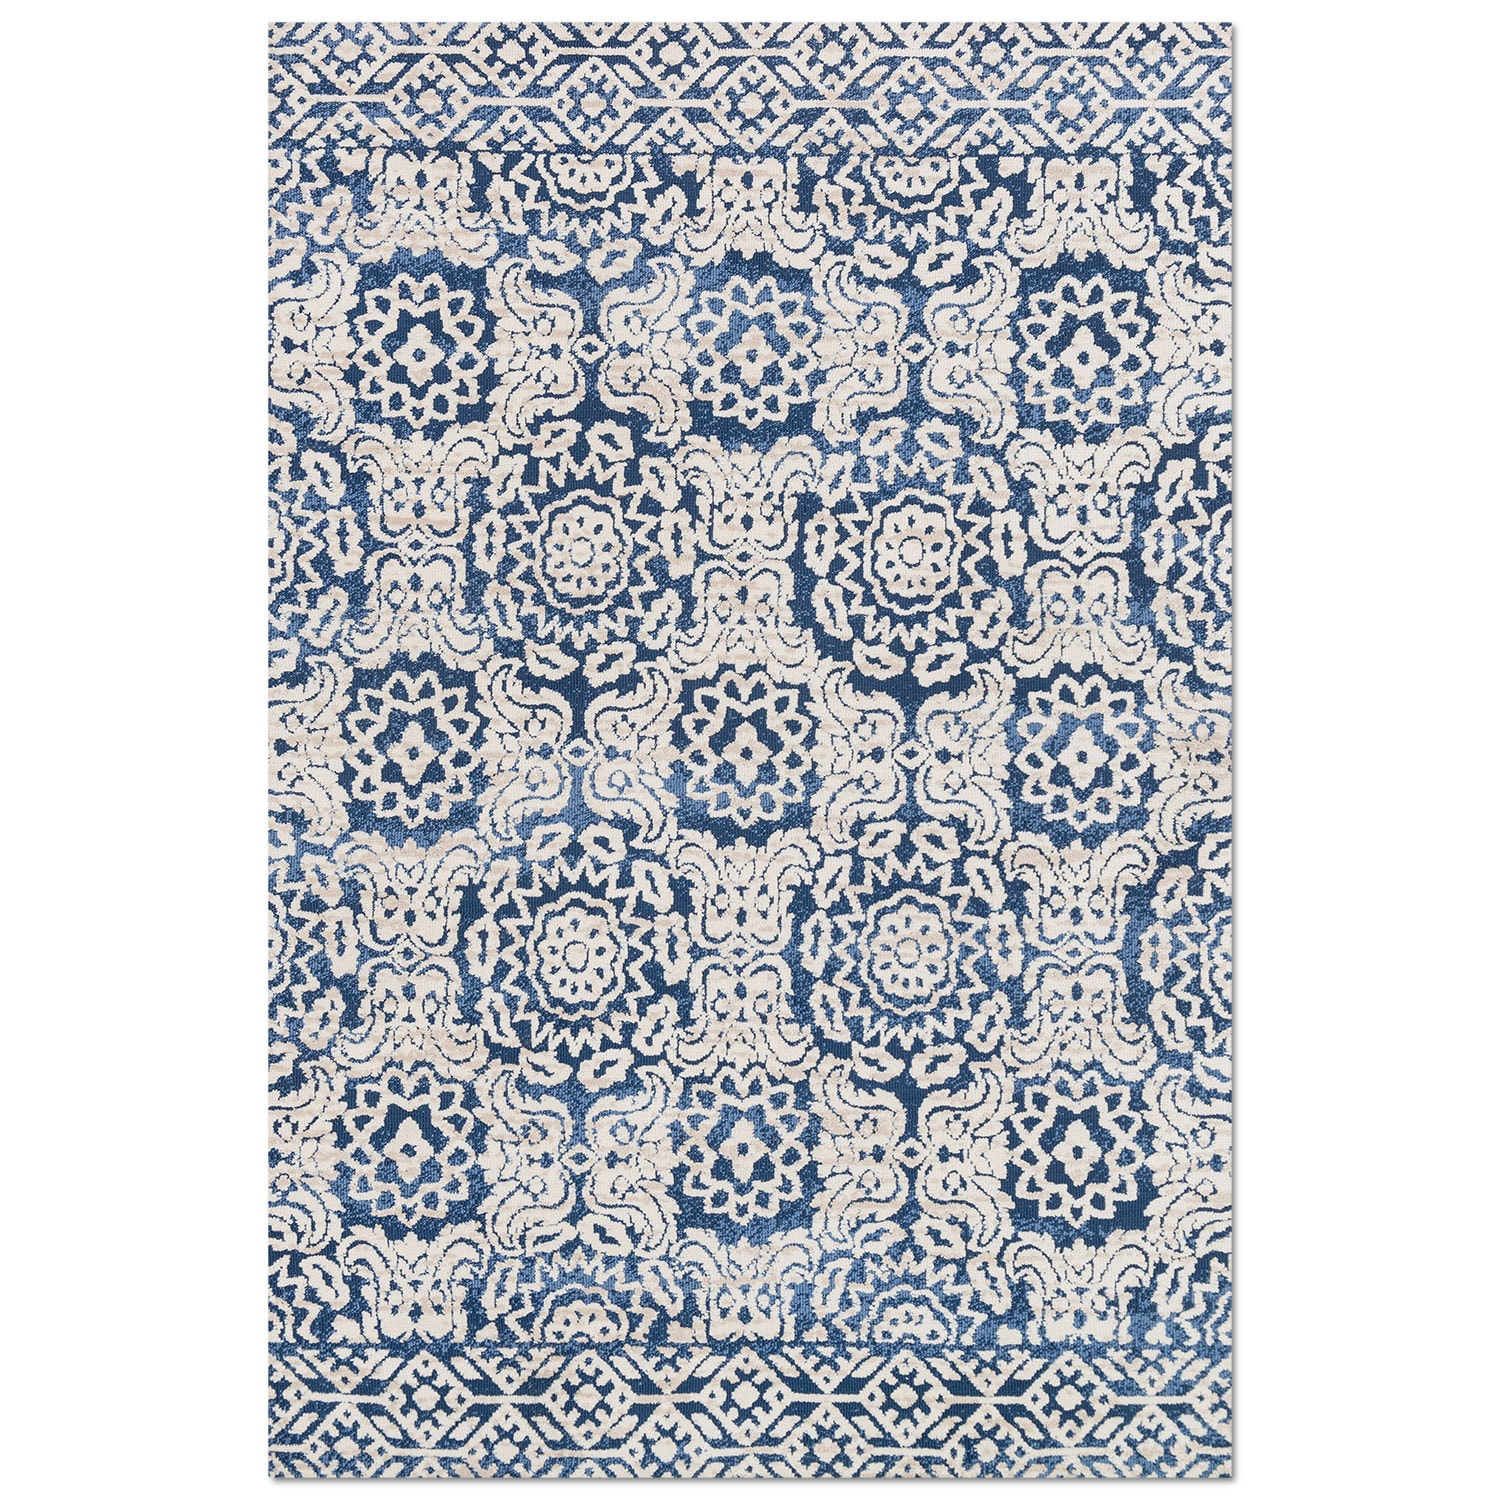 Lotus 4' x 6' Rug - Blue and Antique Ivory